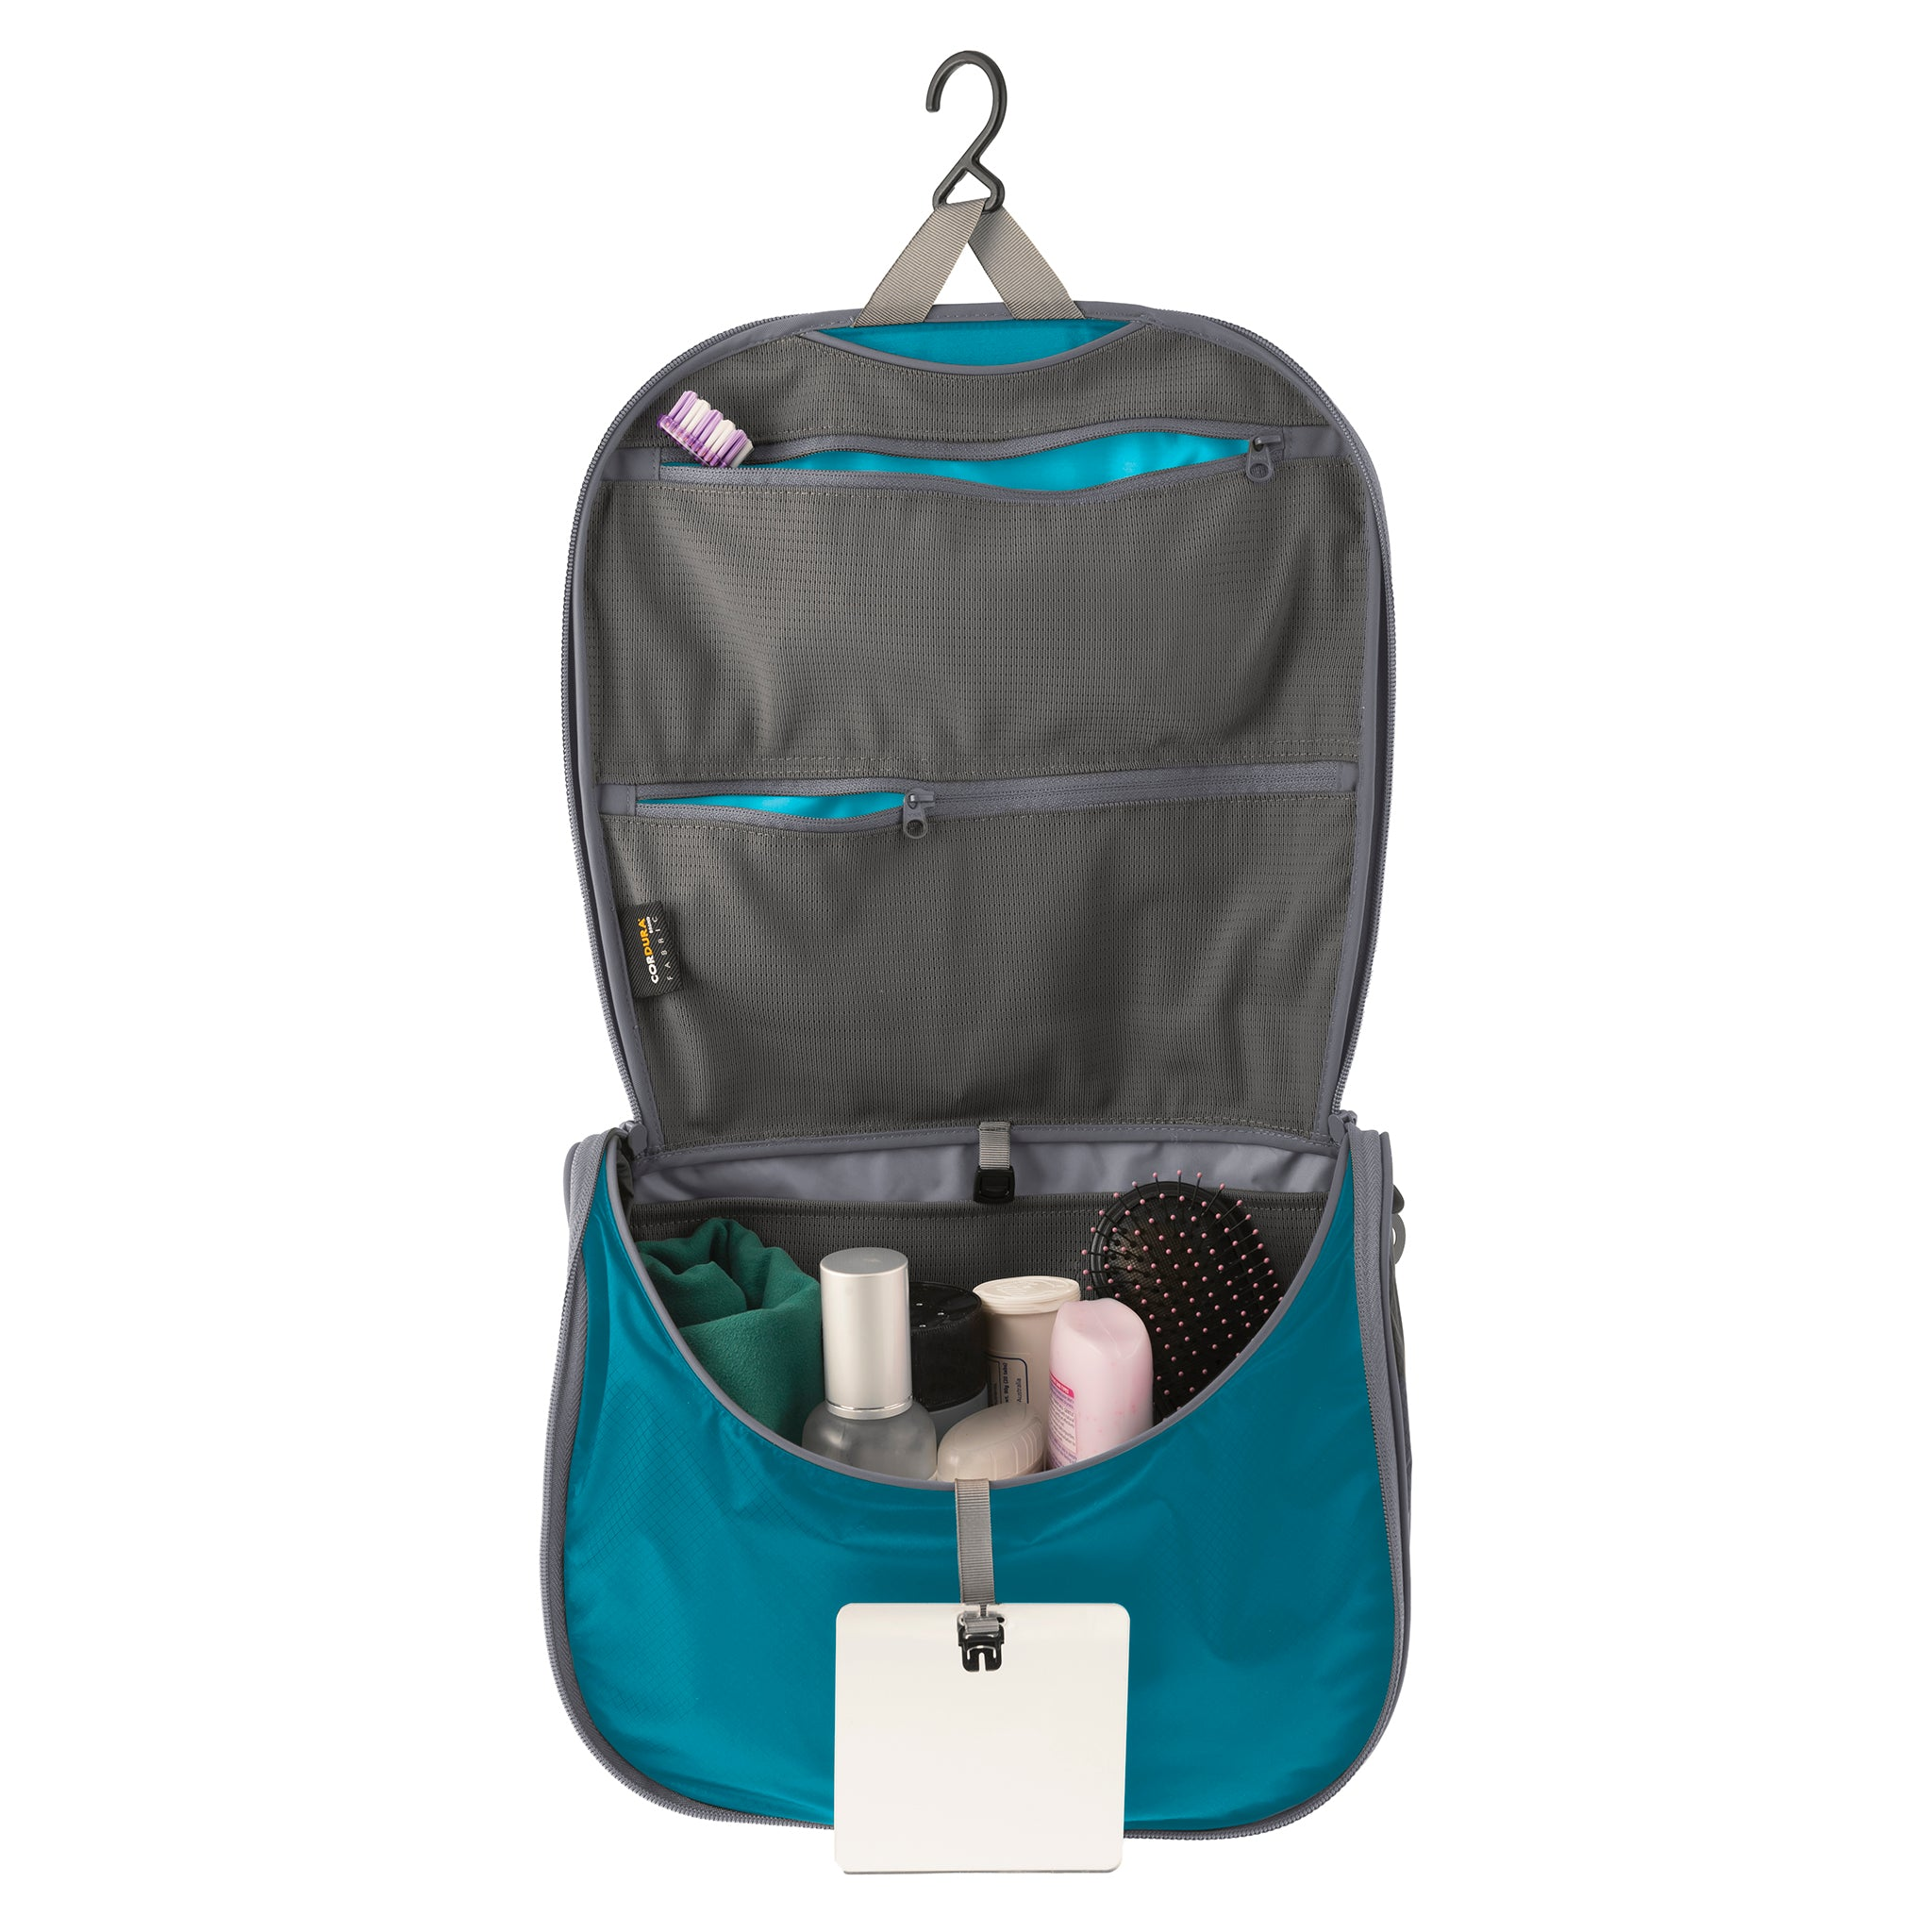 Travelling Light _ Hanging Travel Bag _ Pacific Blue